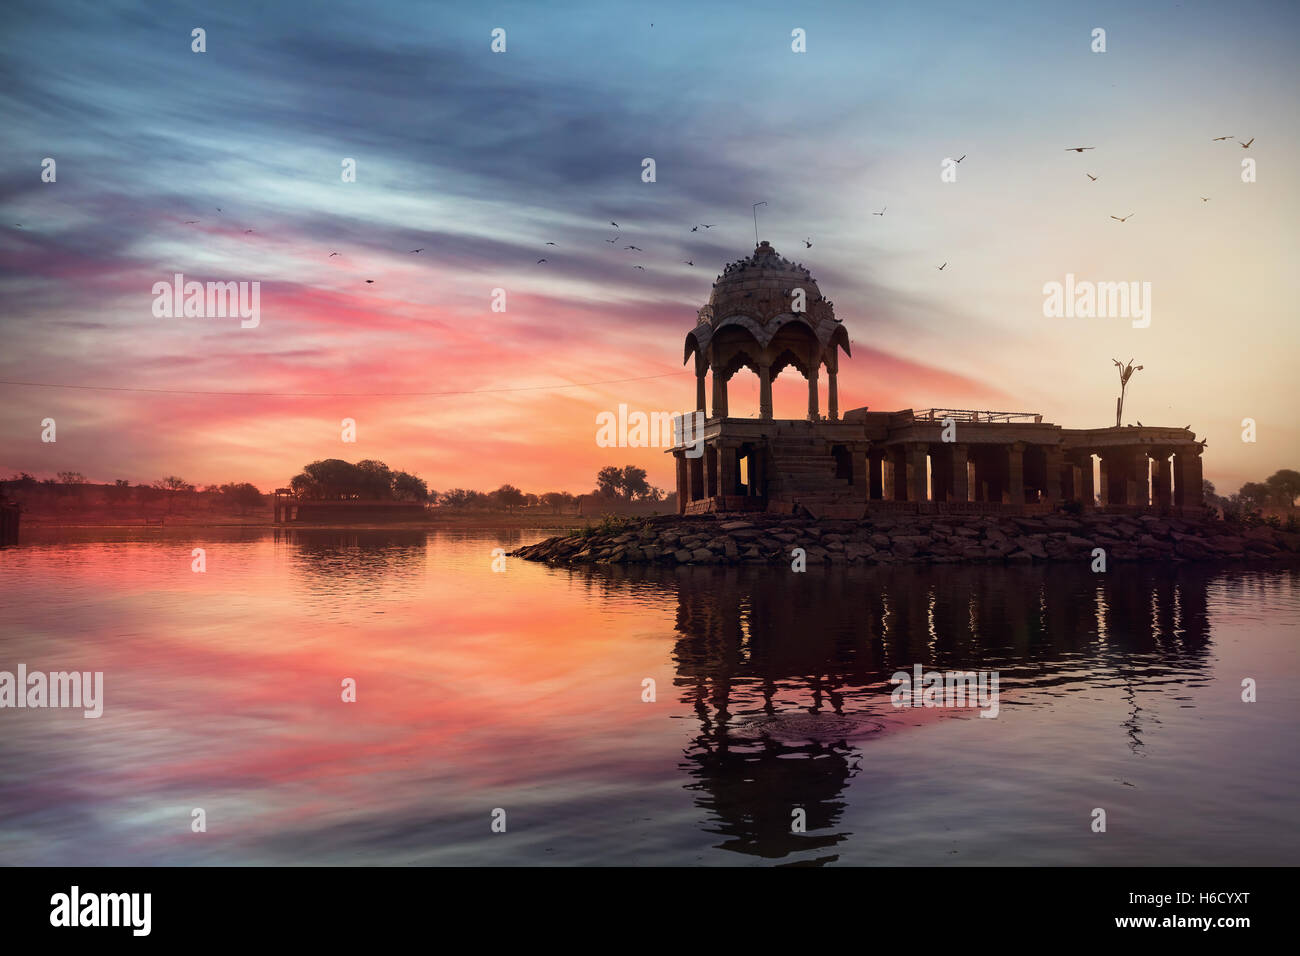 Silhouette of Temple on the Gadi Sagar lake at pink vibrant sunset sky in Jaisalmer, Rajasthan, India - Stock Image